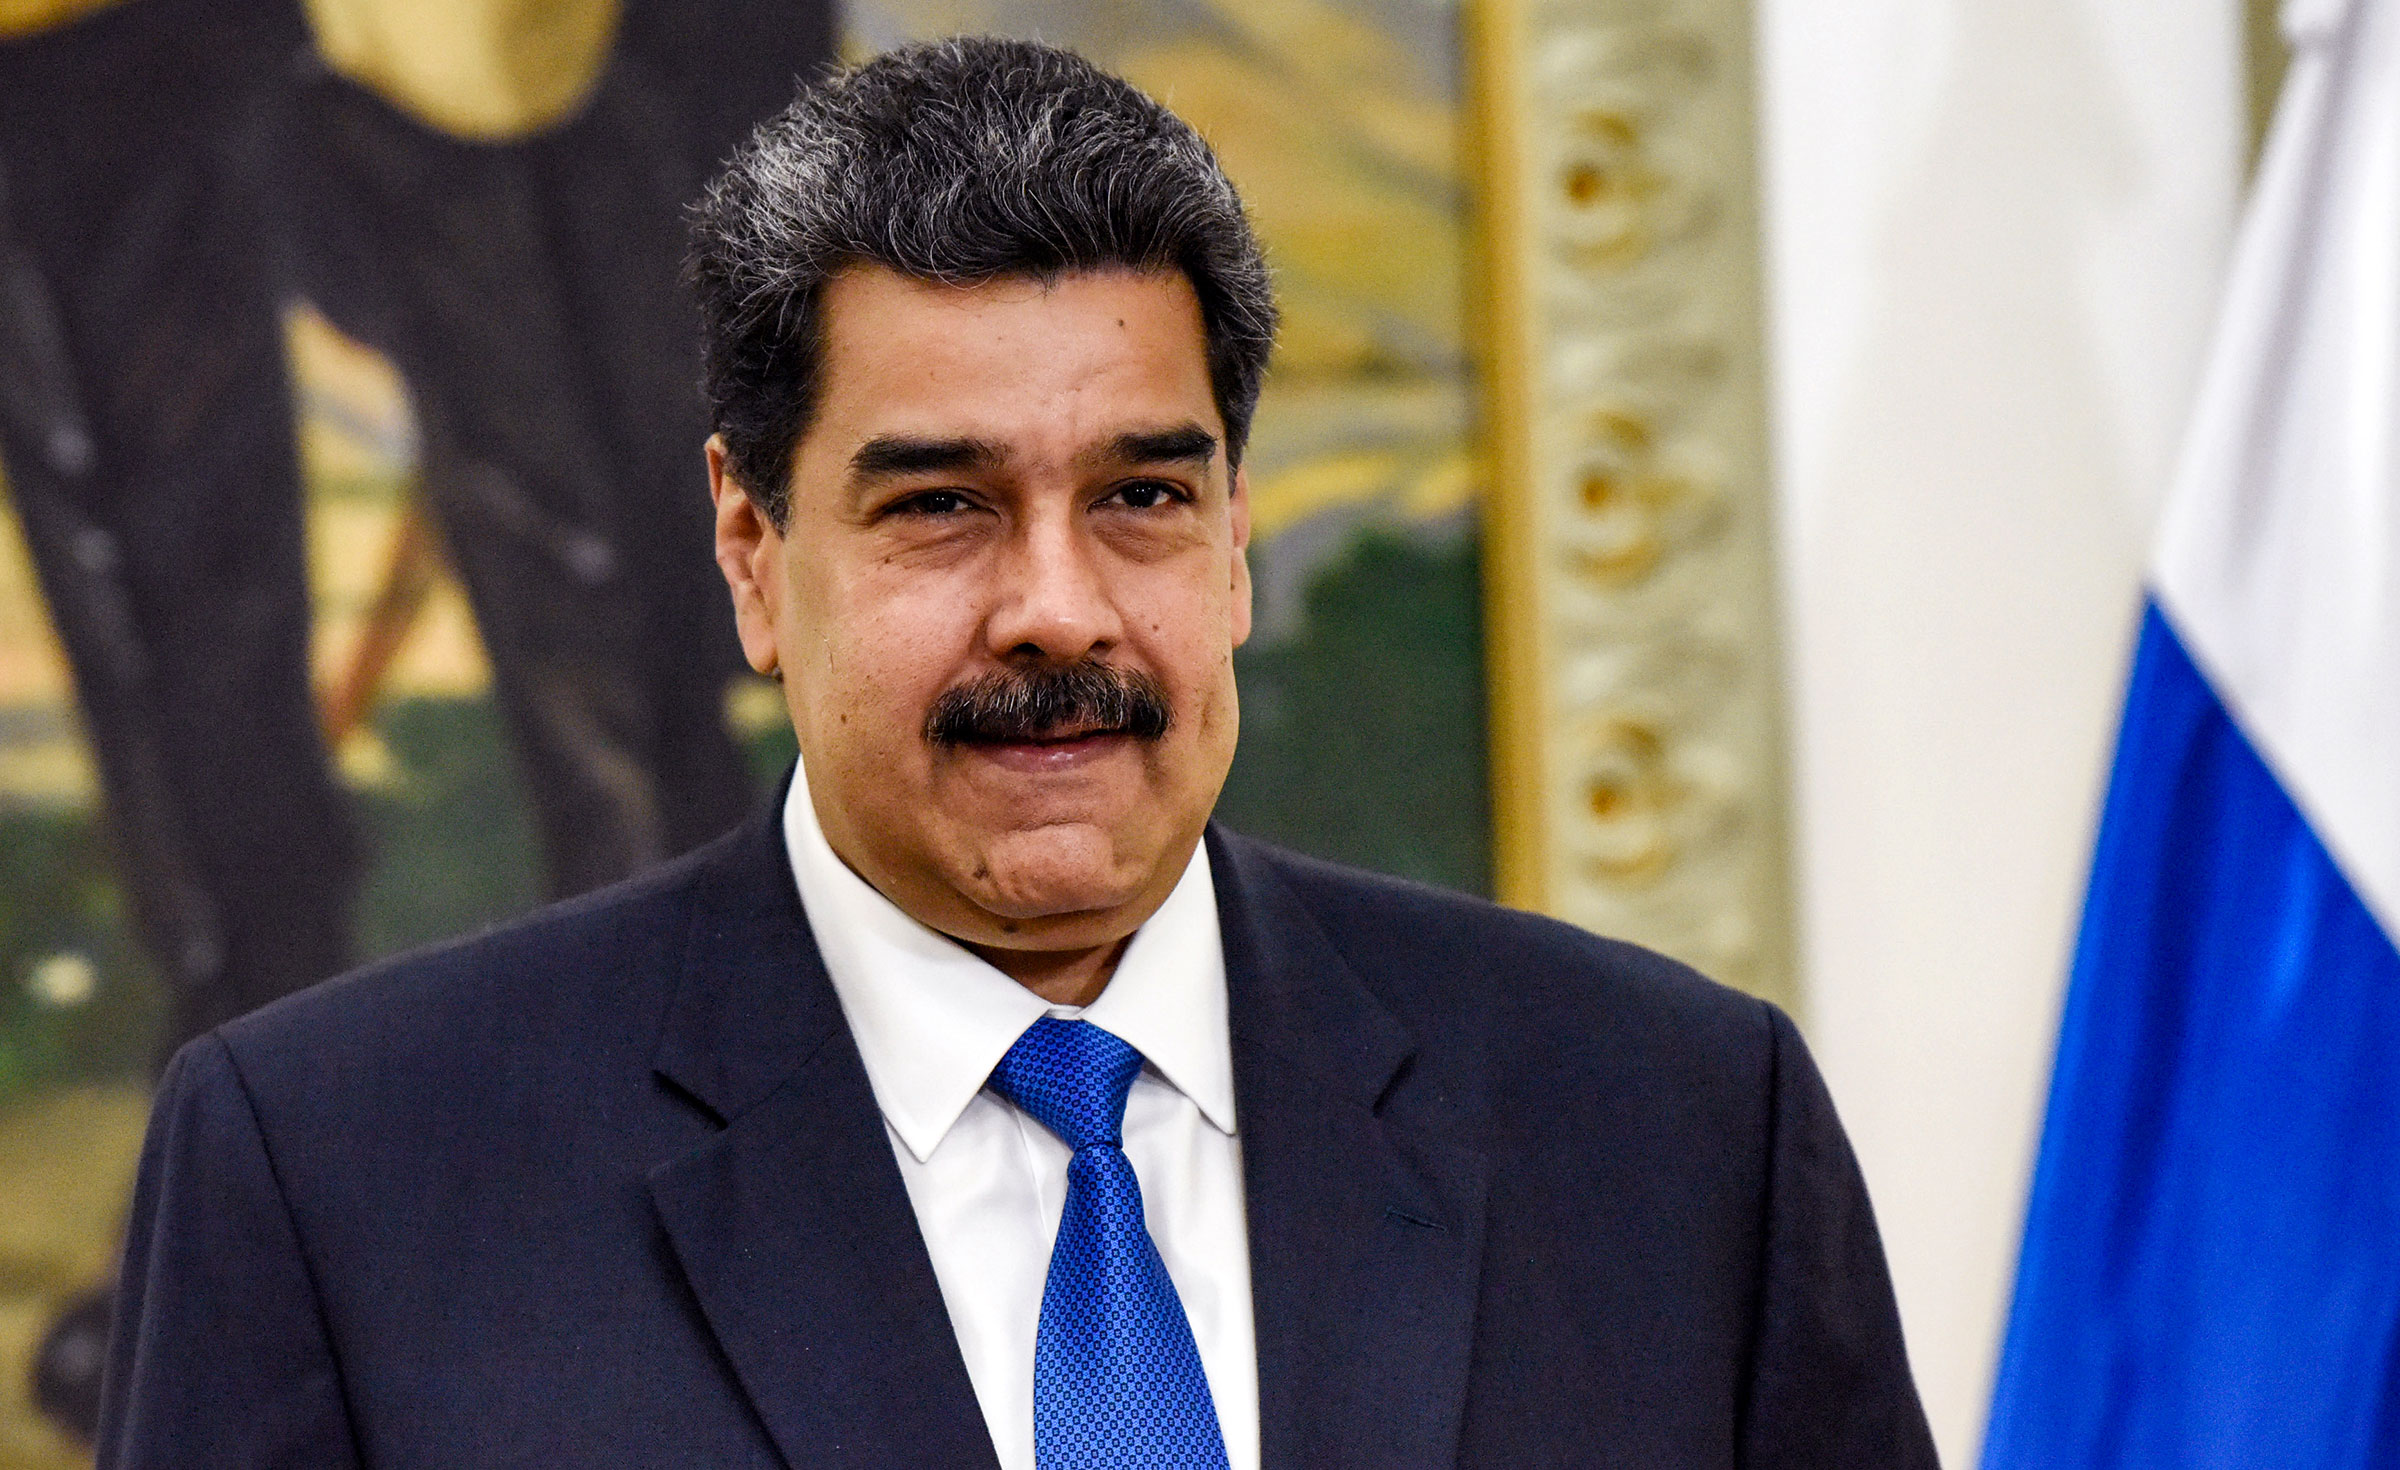 Venezuelan President Nicolas Maduro attends a meeting at the Miraflores Palace in Caracas, Venezuela on February 7.